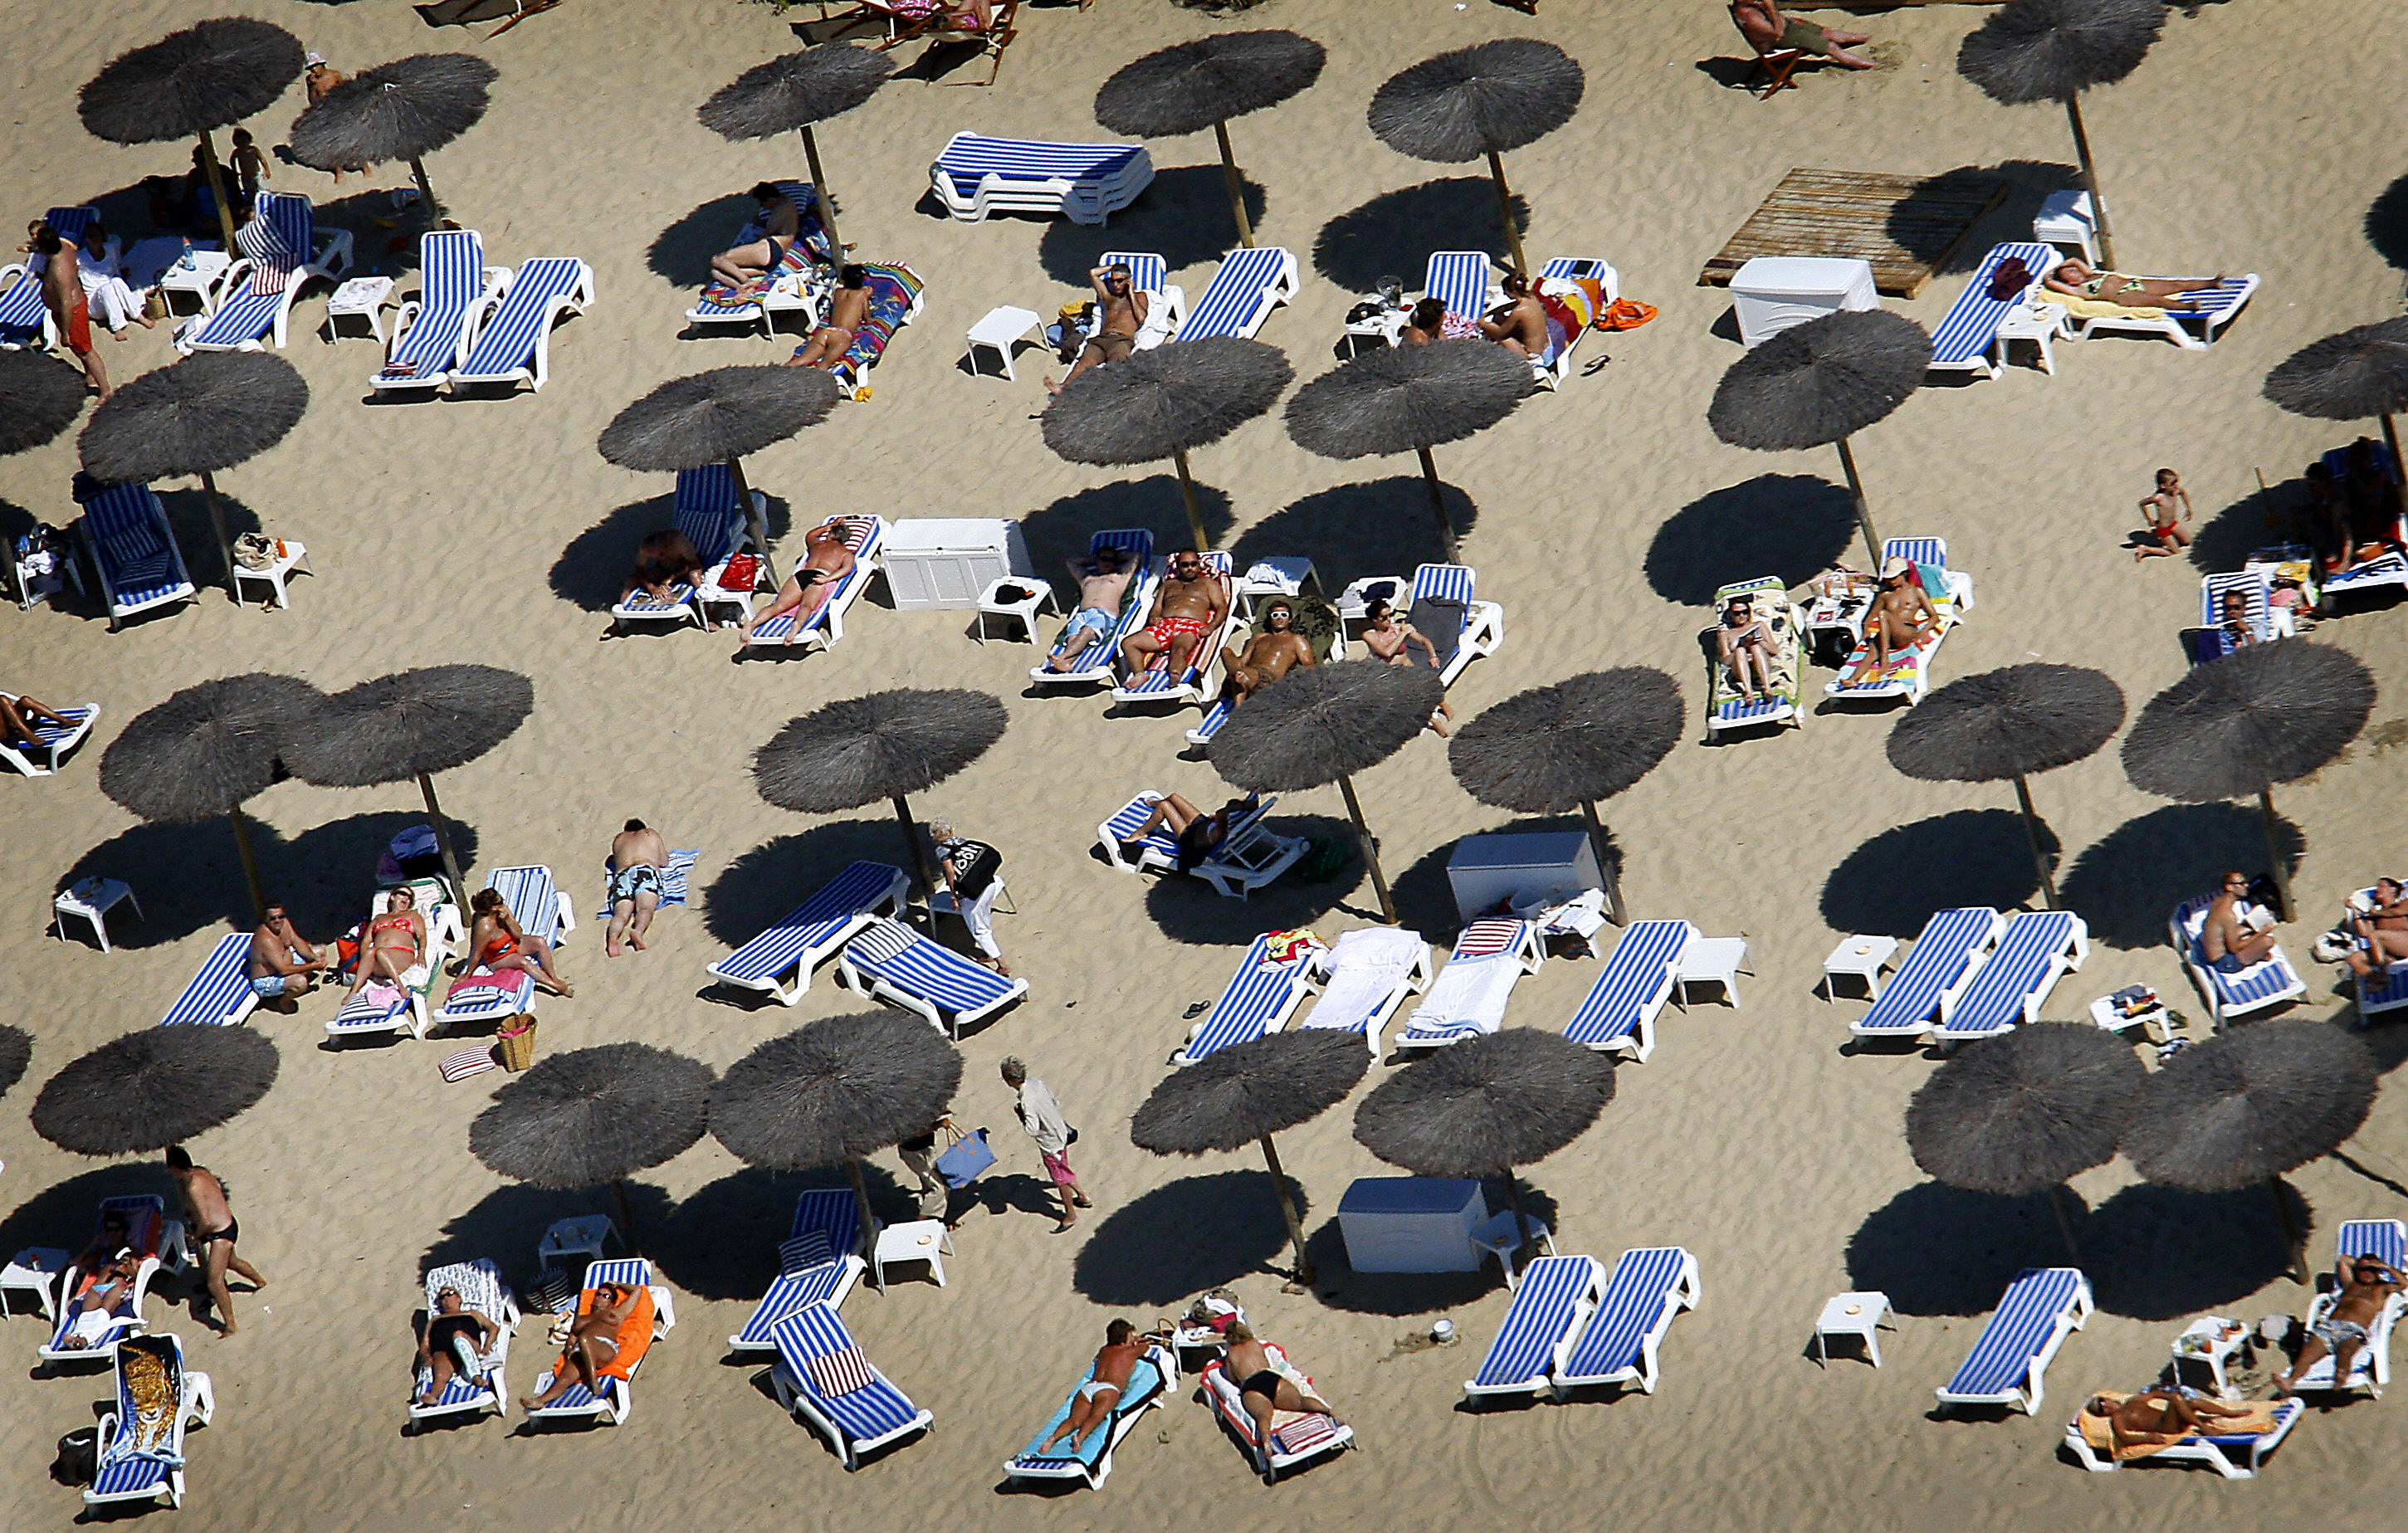 Slide 10 of 39: This aerial photography taken on July 19, 2008 shows people enjoying the beach along the basin of Arcachon, on the French atlantic coast, southwestern France. AFP PHOTO PATRICK BERNARD (Photo credit should read PATRICK BERNARD/AFP/Getty Images)